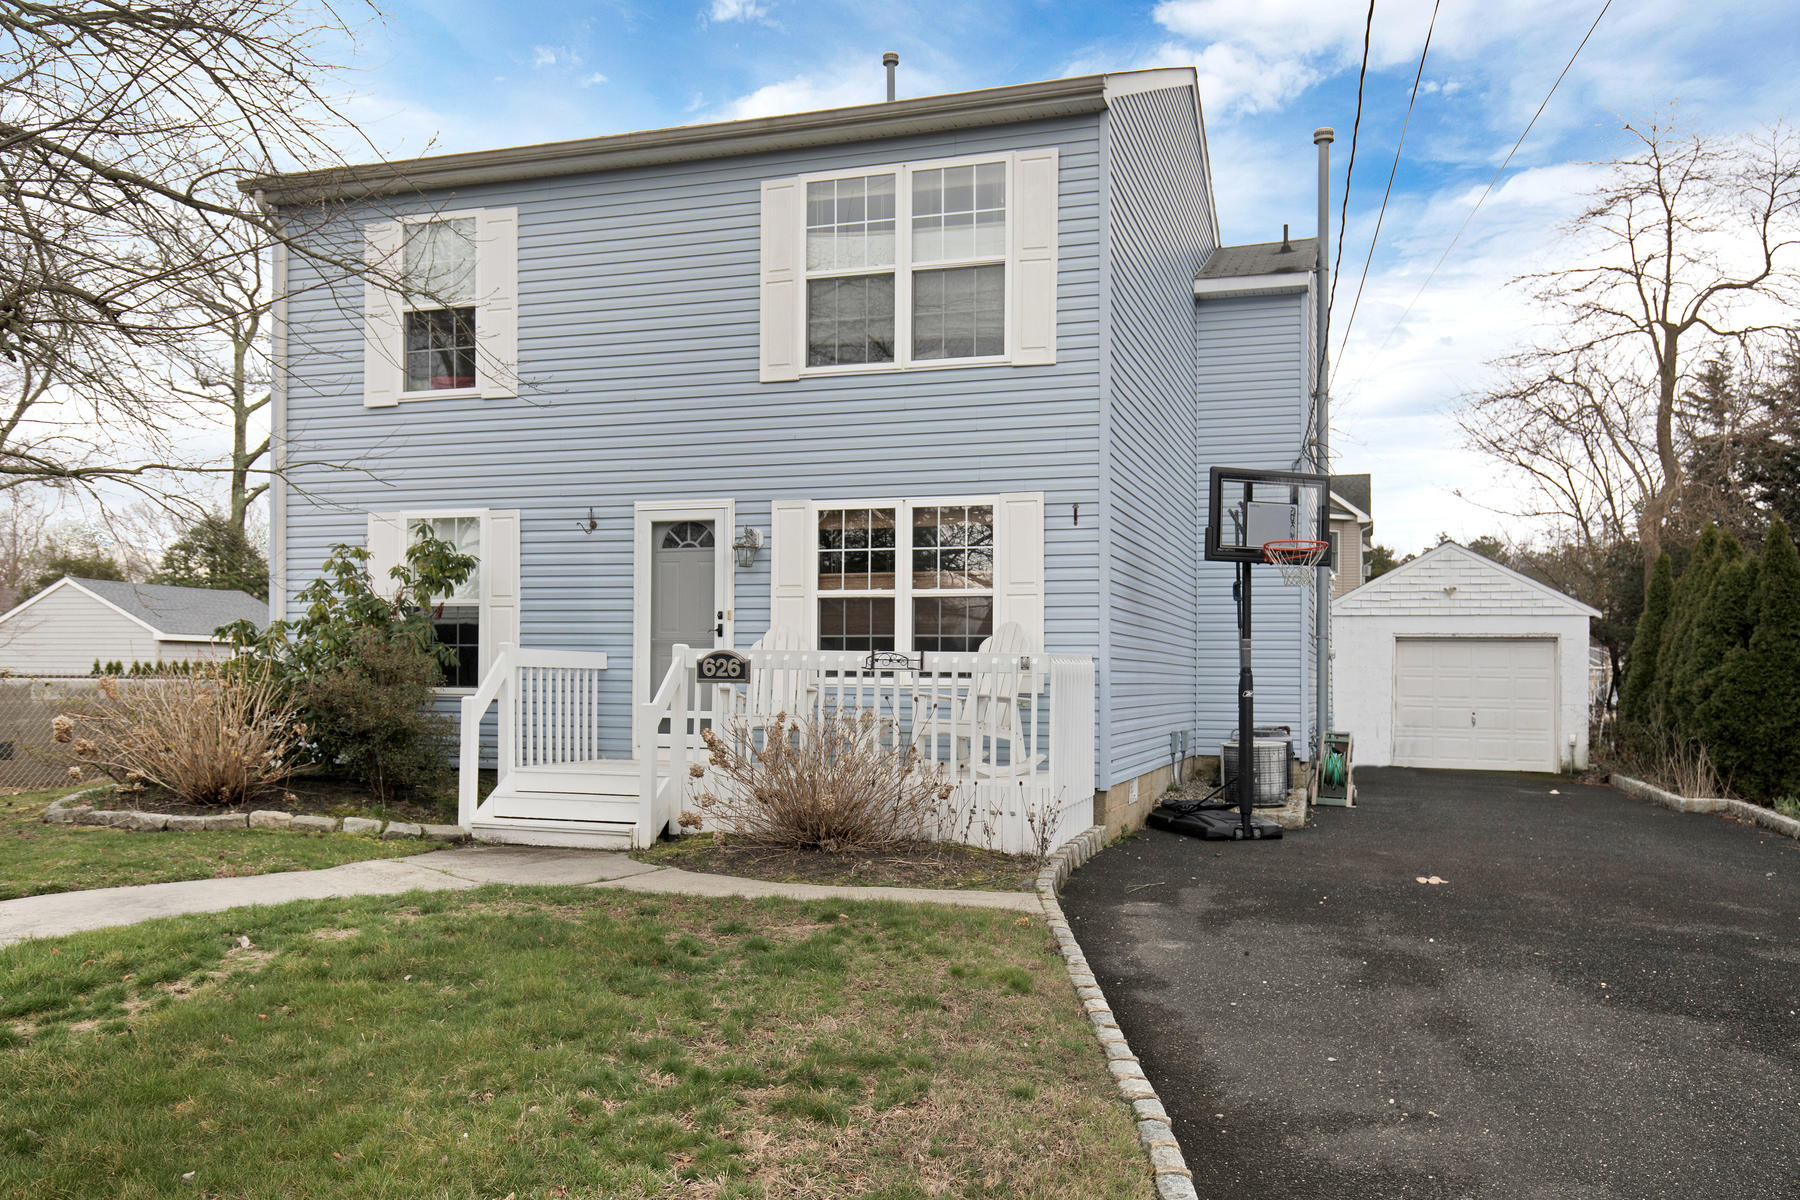 Maison unifamiliale pour l Vente à Desirable East Of The Canal Location 626 Delaware Avenue Point Pleasant, New Jersey 08742 États-Unis